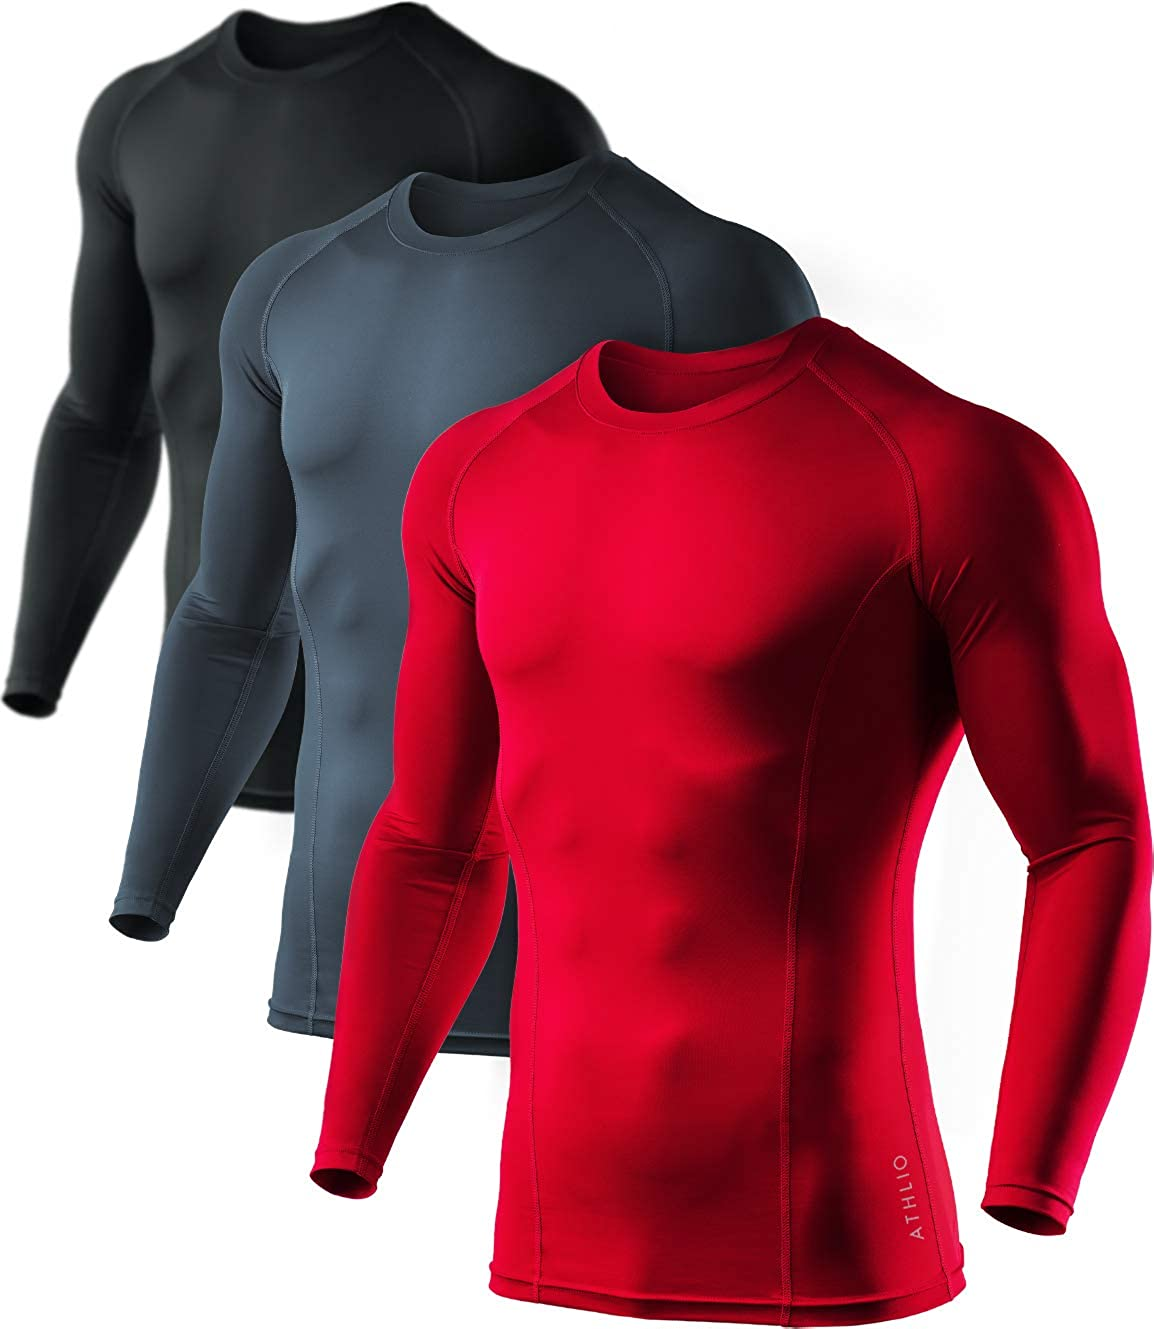 ATHLIO 3 Pack Men's Cool Dry Compression Long Sleeve Baselayer Athletic Sports T-Shirts Tops